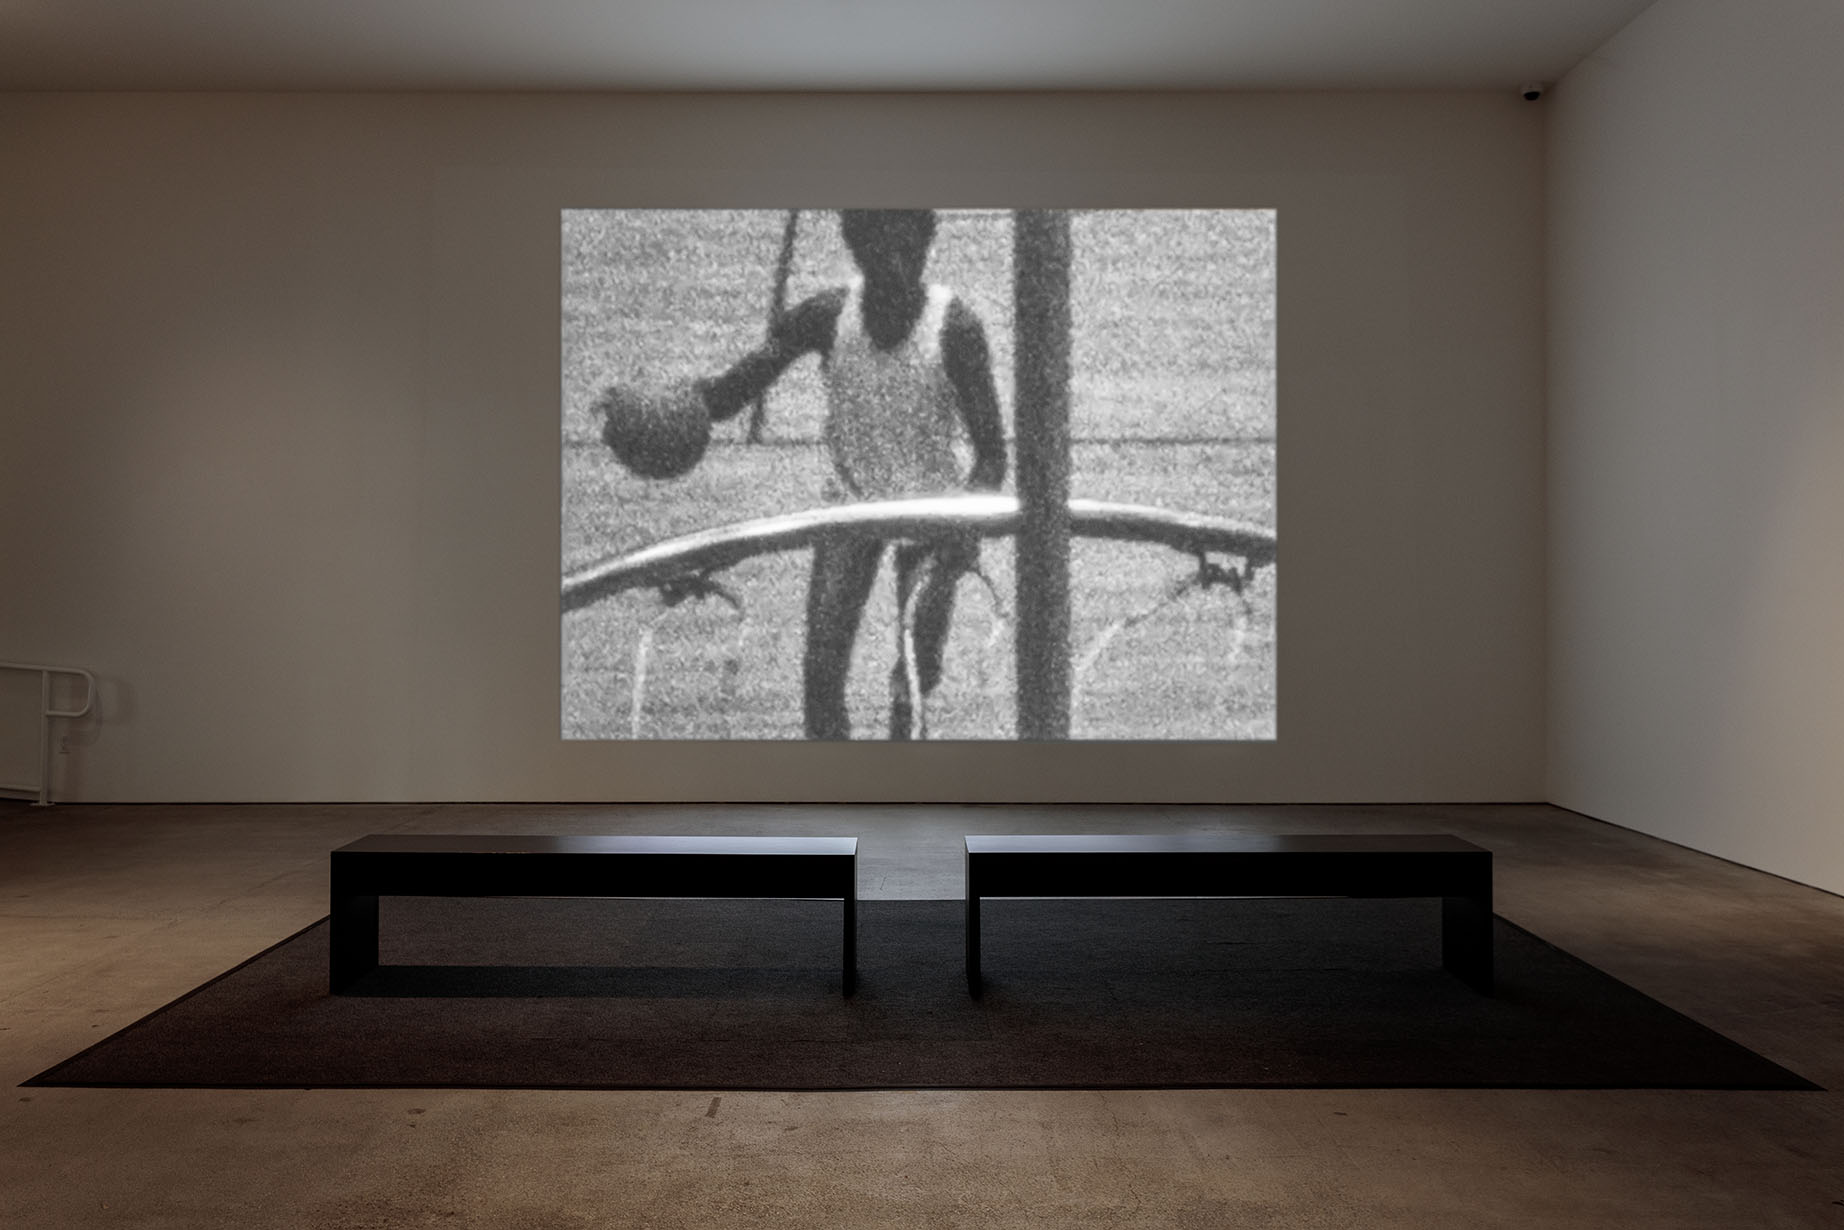 Installation view of Time is Running Out of Time: Experimental Film and Video from the L.A. Rebellion and Today at Art + Practice. 2 February - 14 September 2019. Photo by Joshua White.